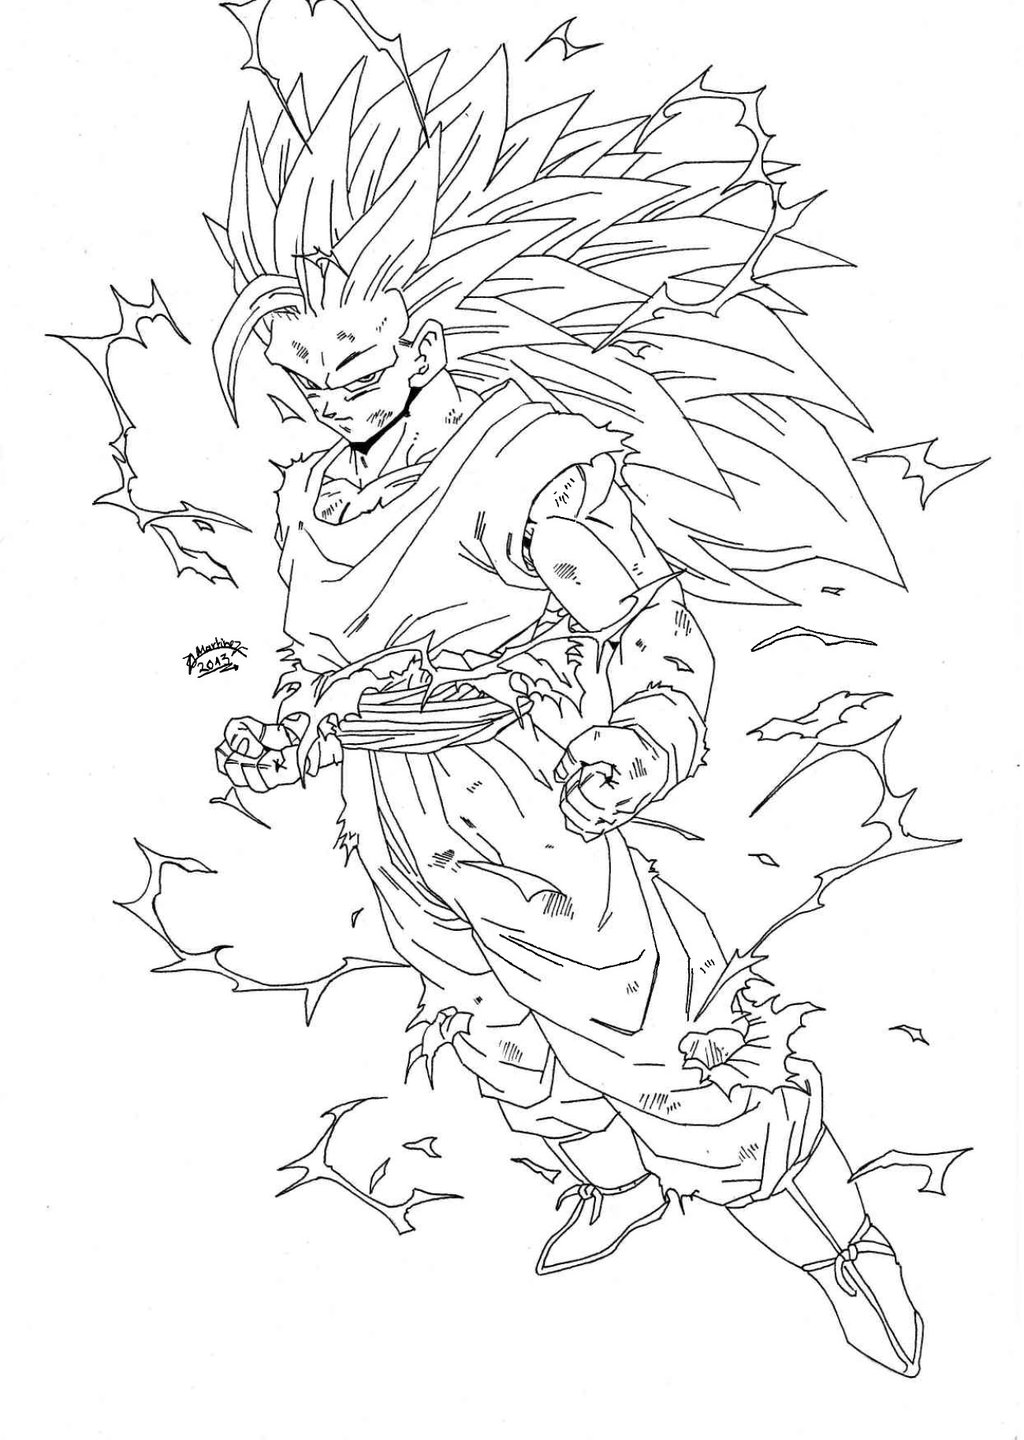 Dbz Group Coloring Pages - Worksheet & Coloring Pages